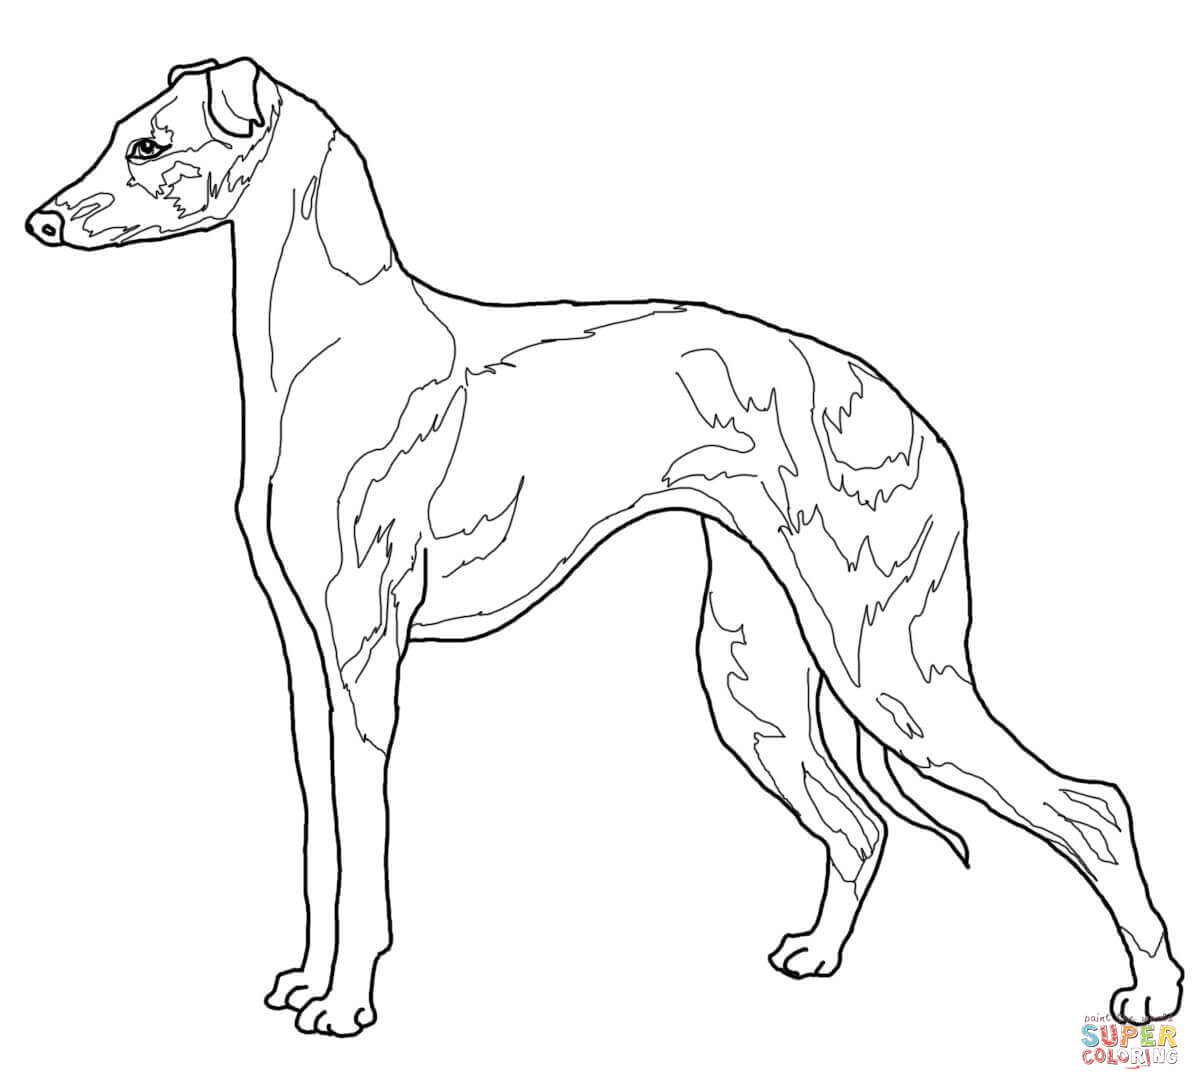 hound dog coloring pages dog breed coloring pages hubpages dog coloring hound pages